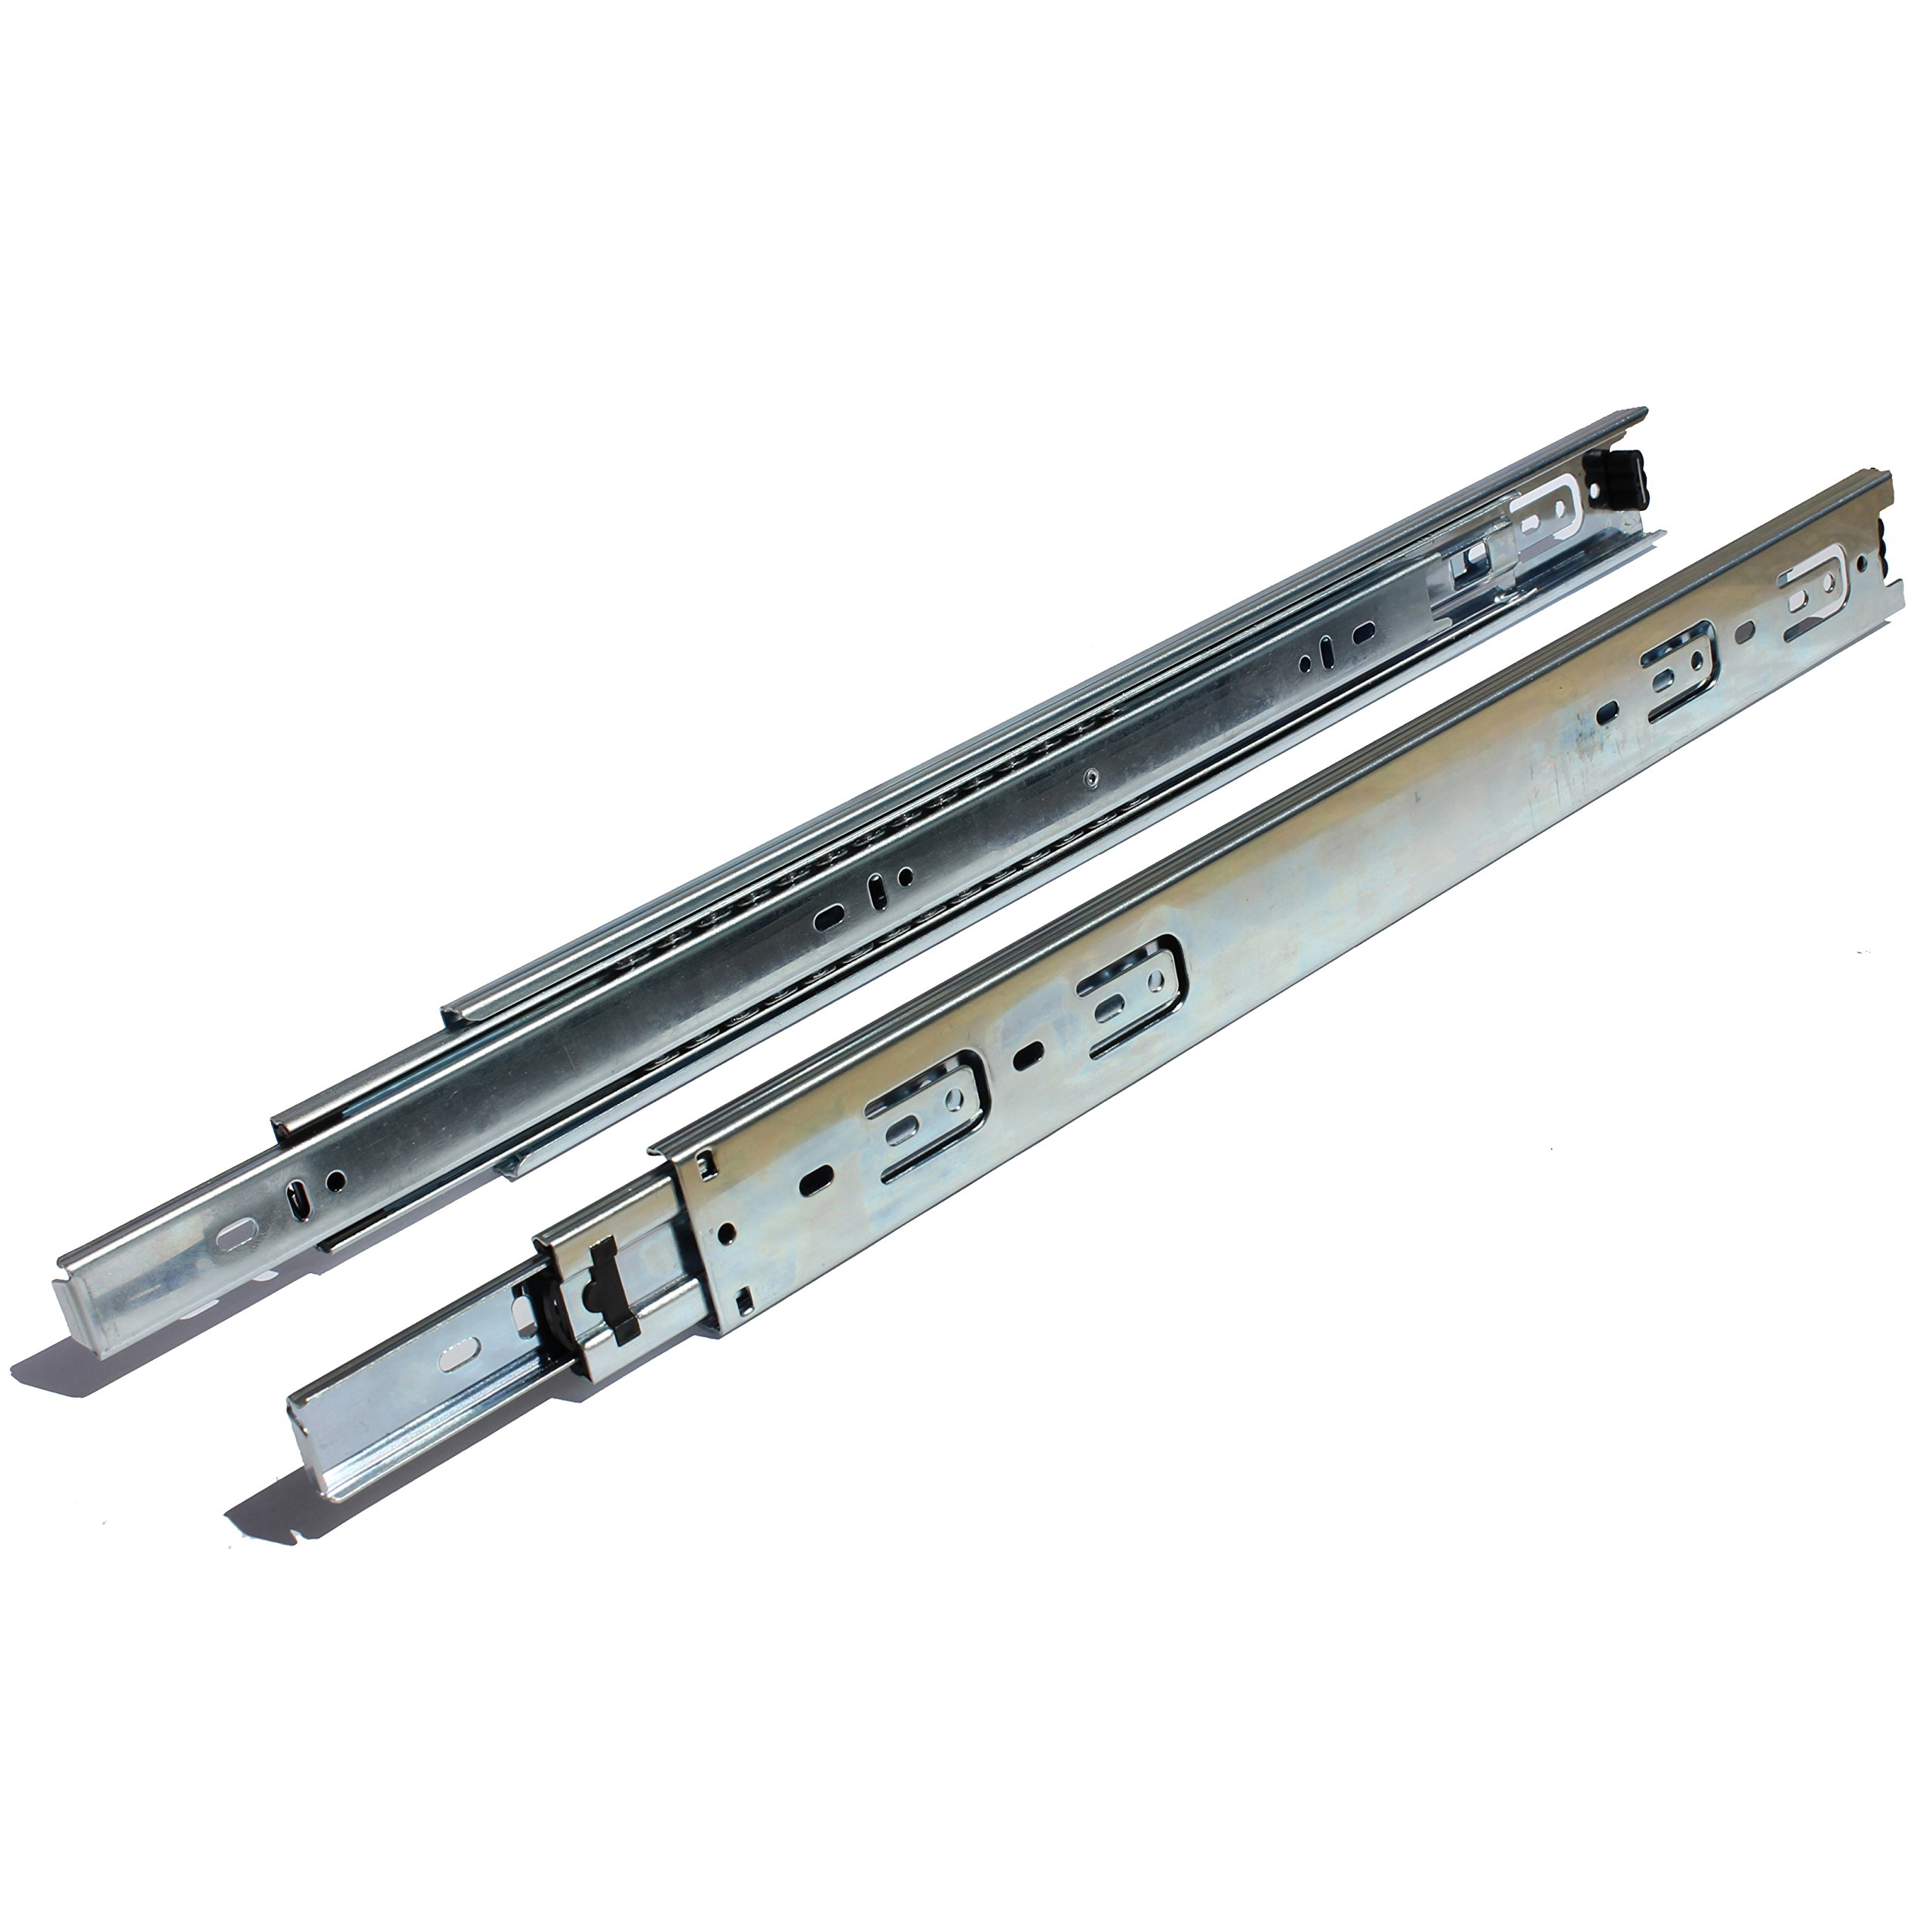 GlideRite Hardware 2870-ZC-1 28 Inch Side Mount Full Extension Ball Bearing Drawer Slides with 1 Inch Over-Travel 1 Pack 28'' 1'', 100 lb, Silver